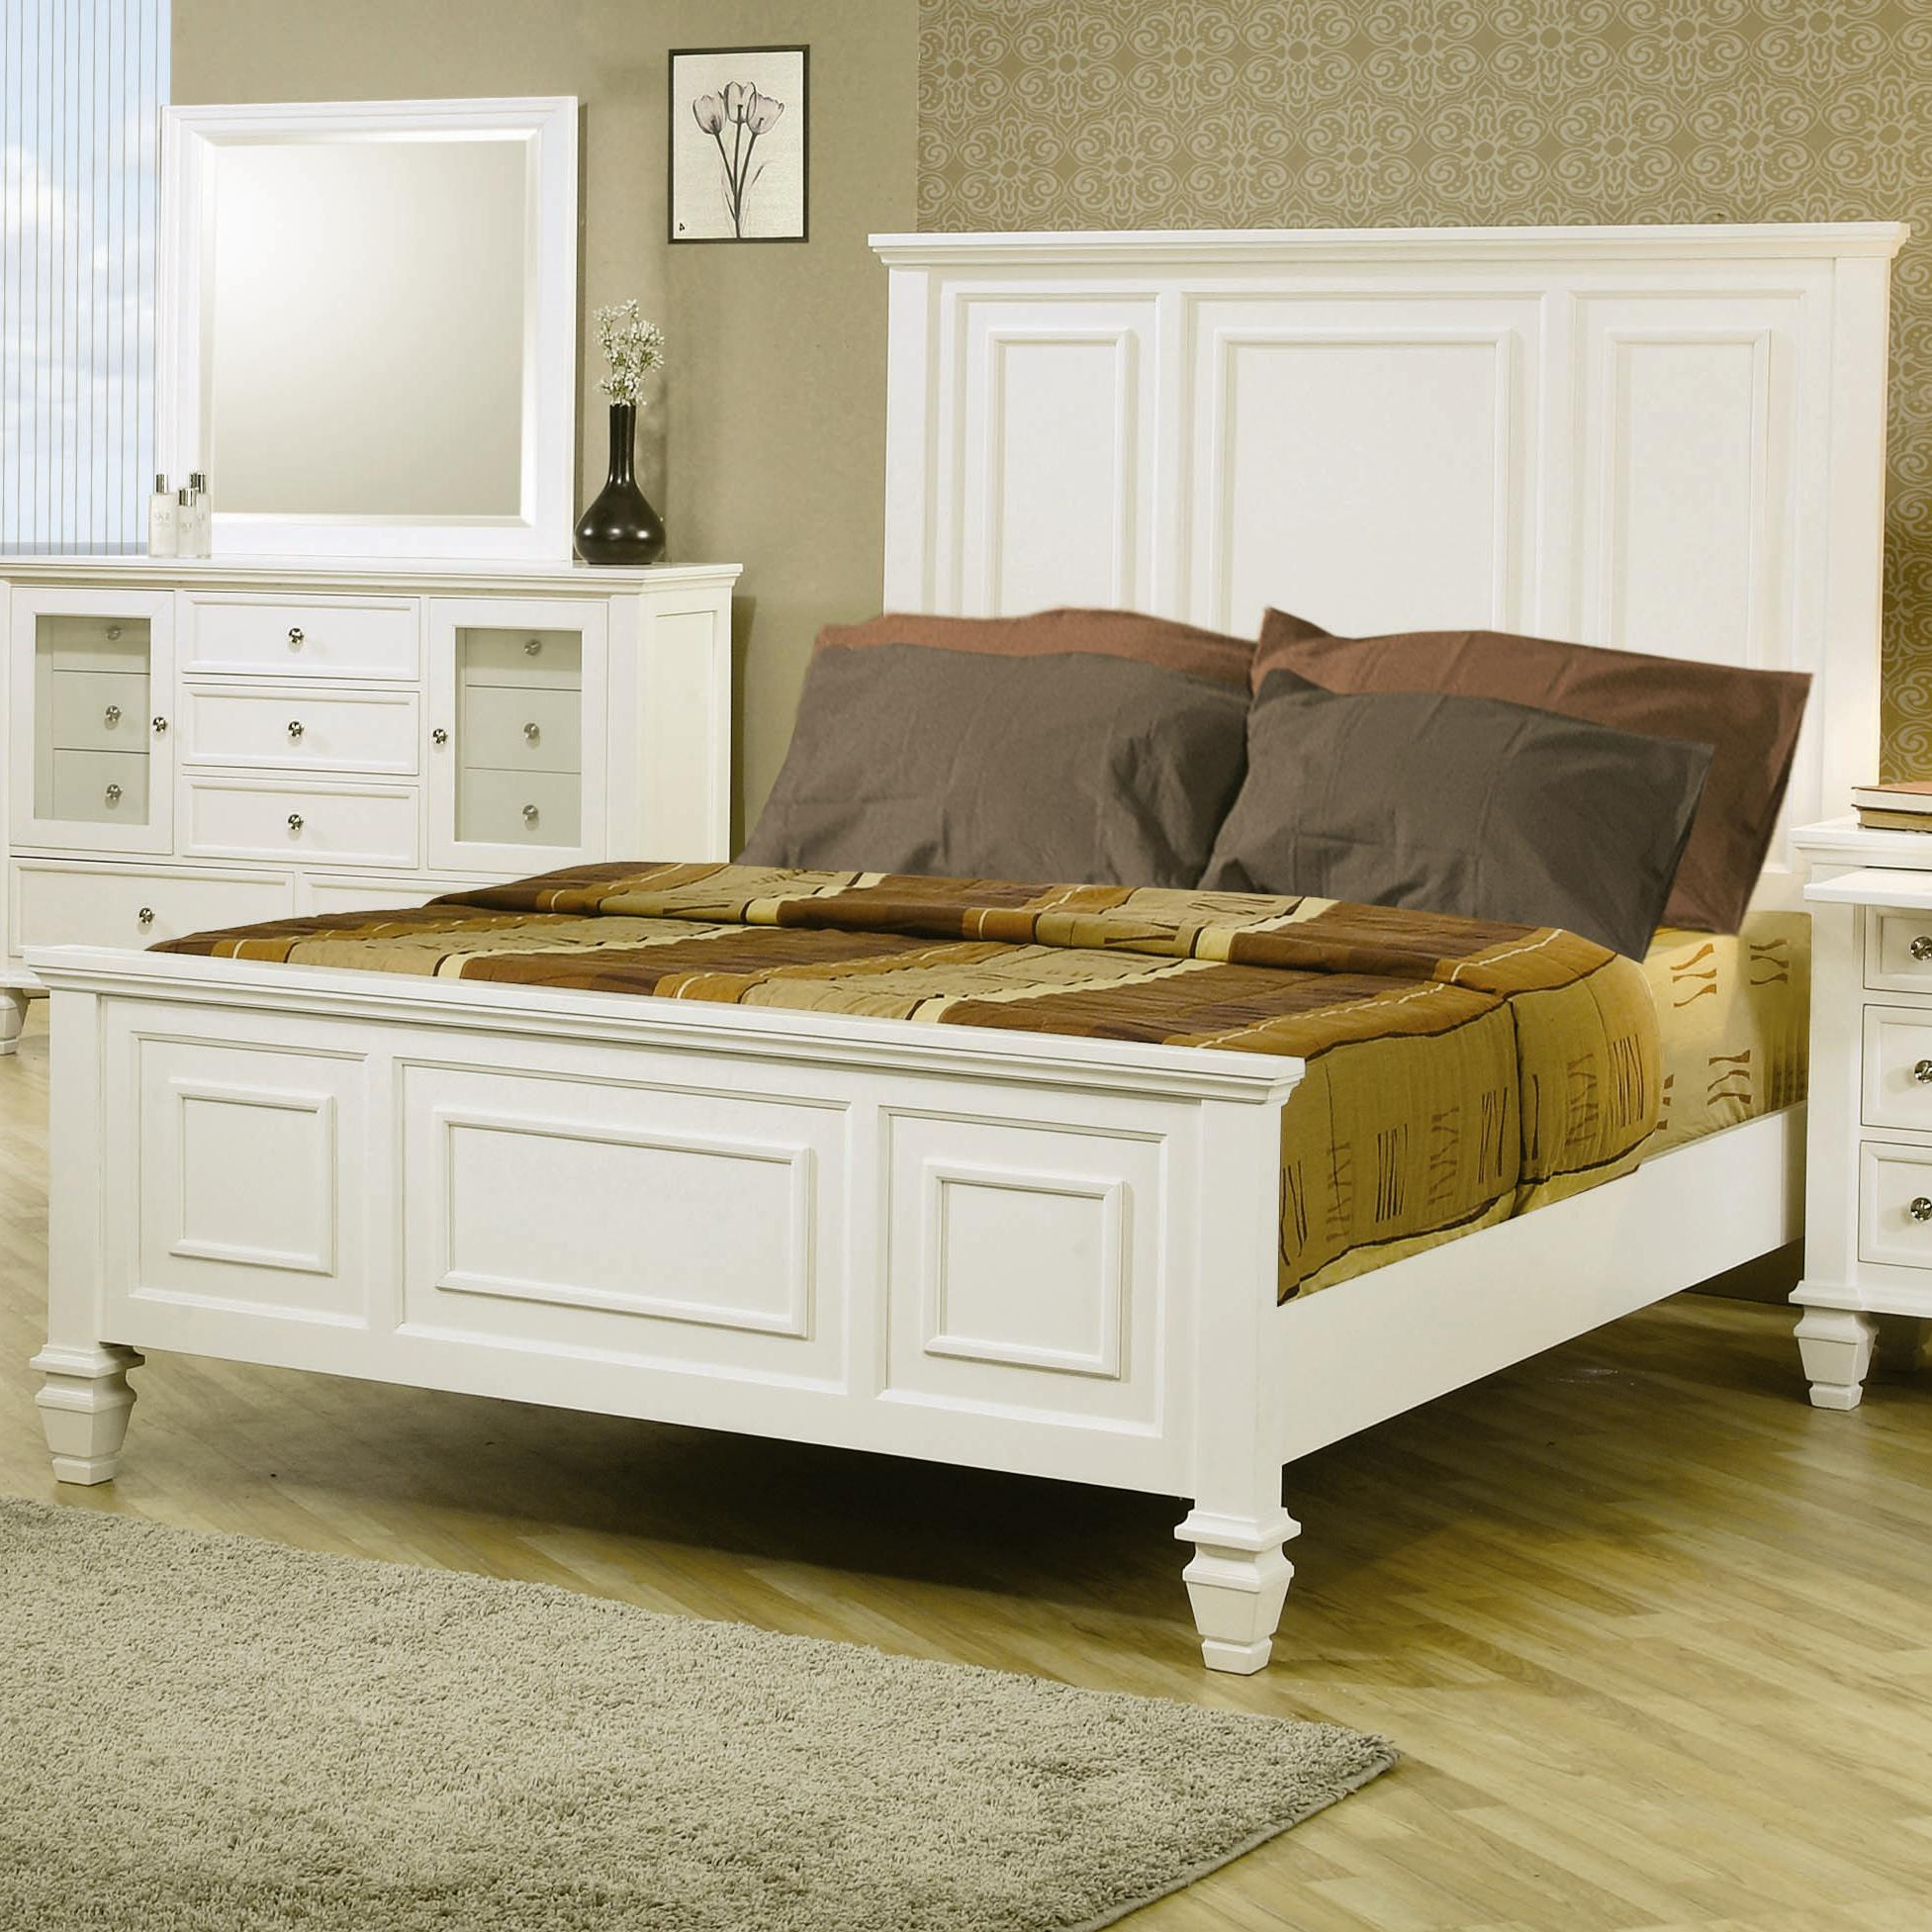 Coaster Sandy Beach King Headboard & Footboard Bed - Item Number: 201301KE